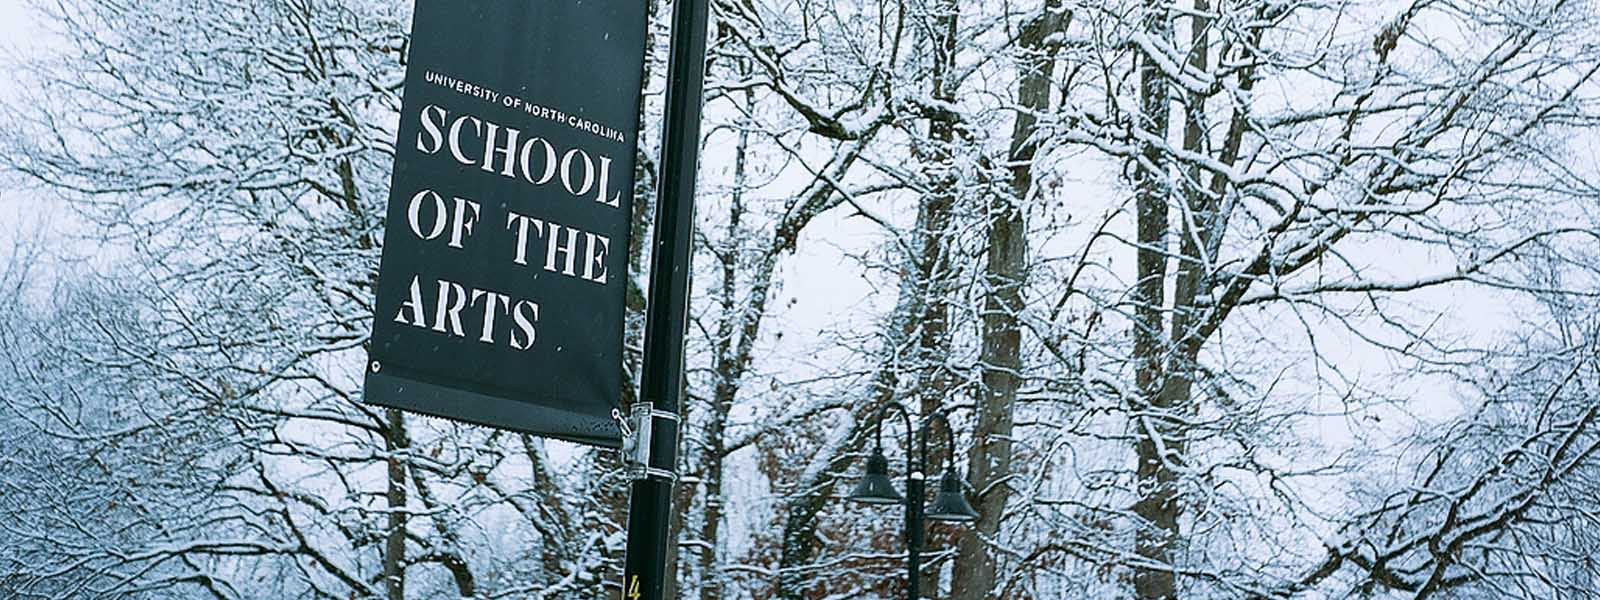 UNCSA banner in snow